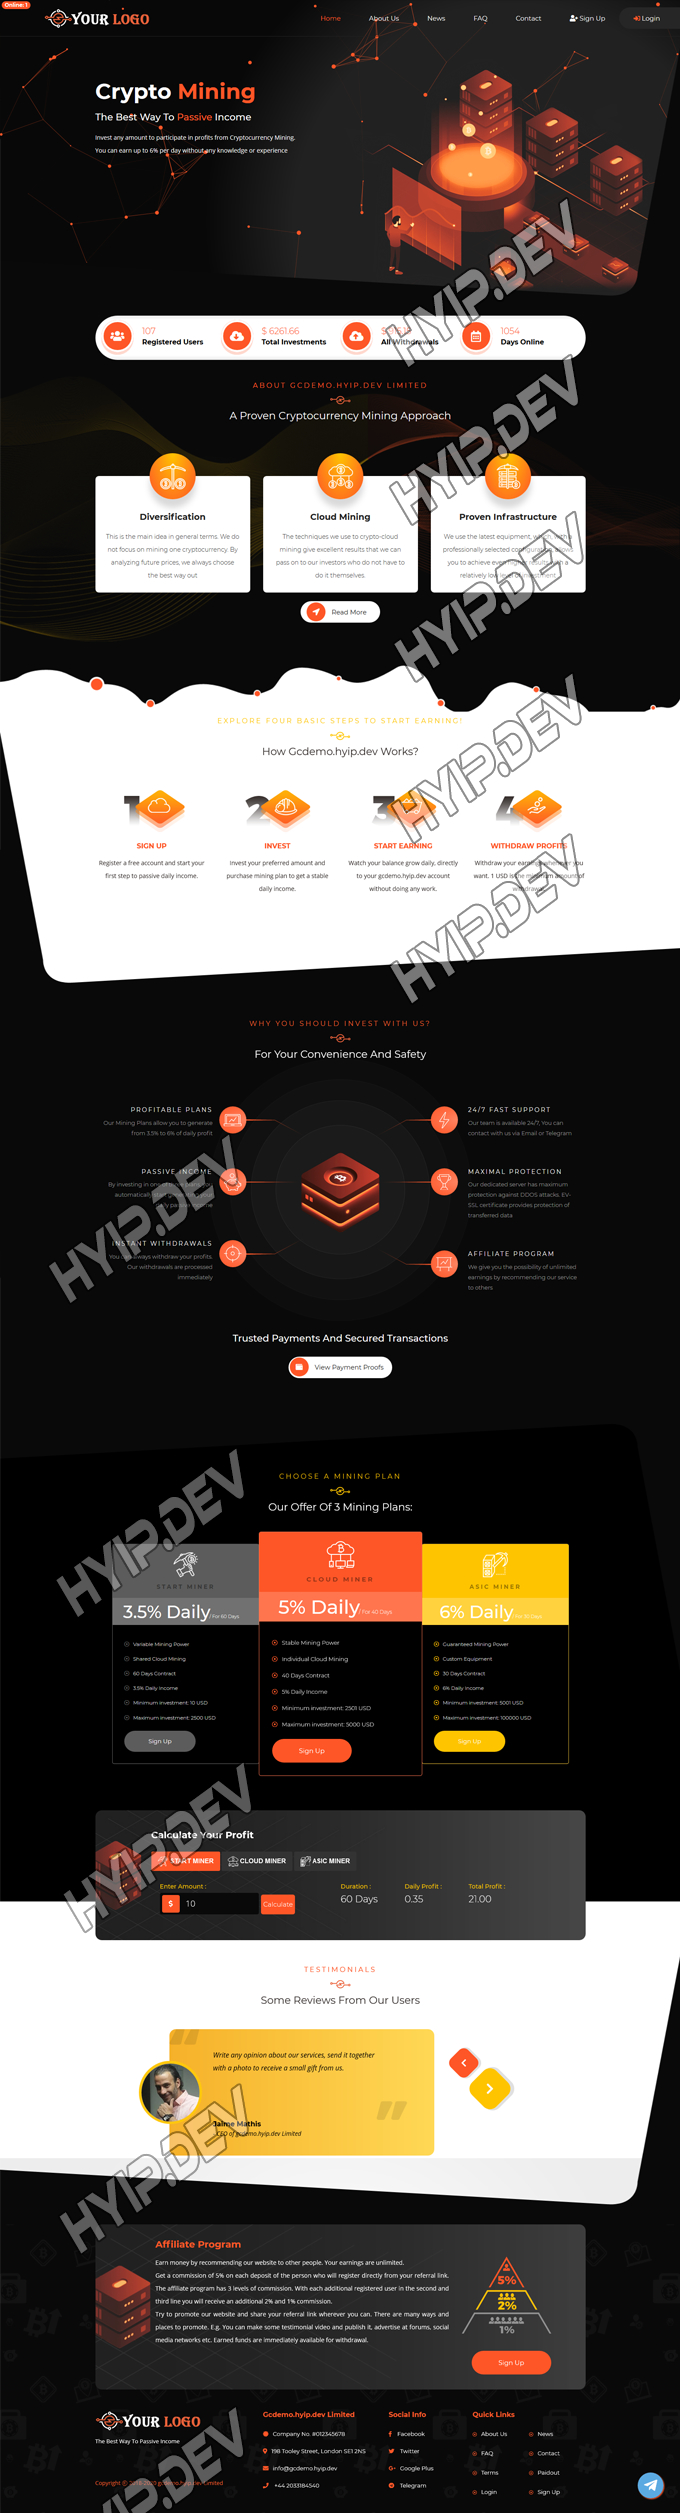 goldcoders hyip template no. 070, home page screenshot